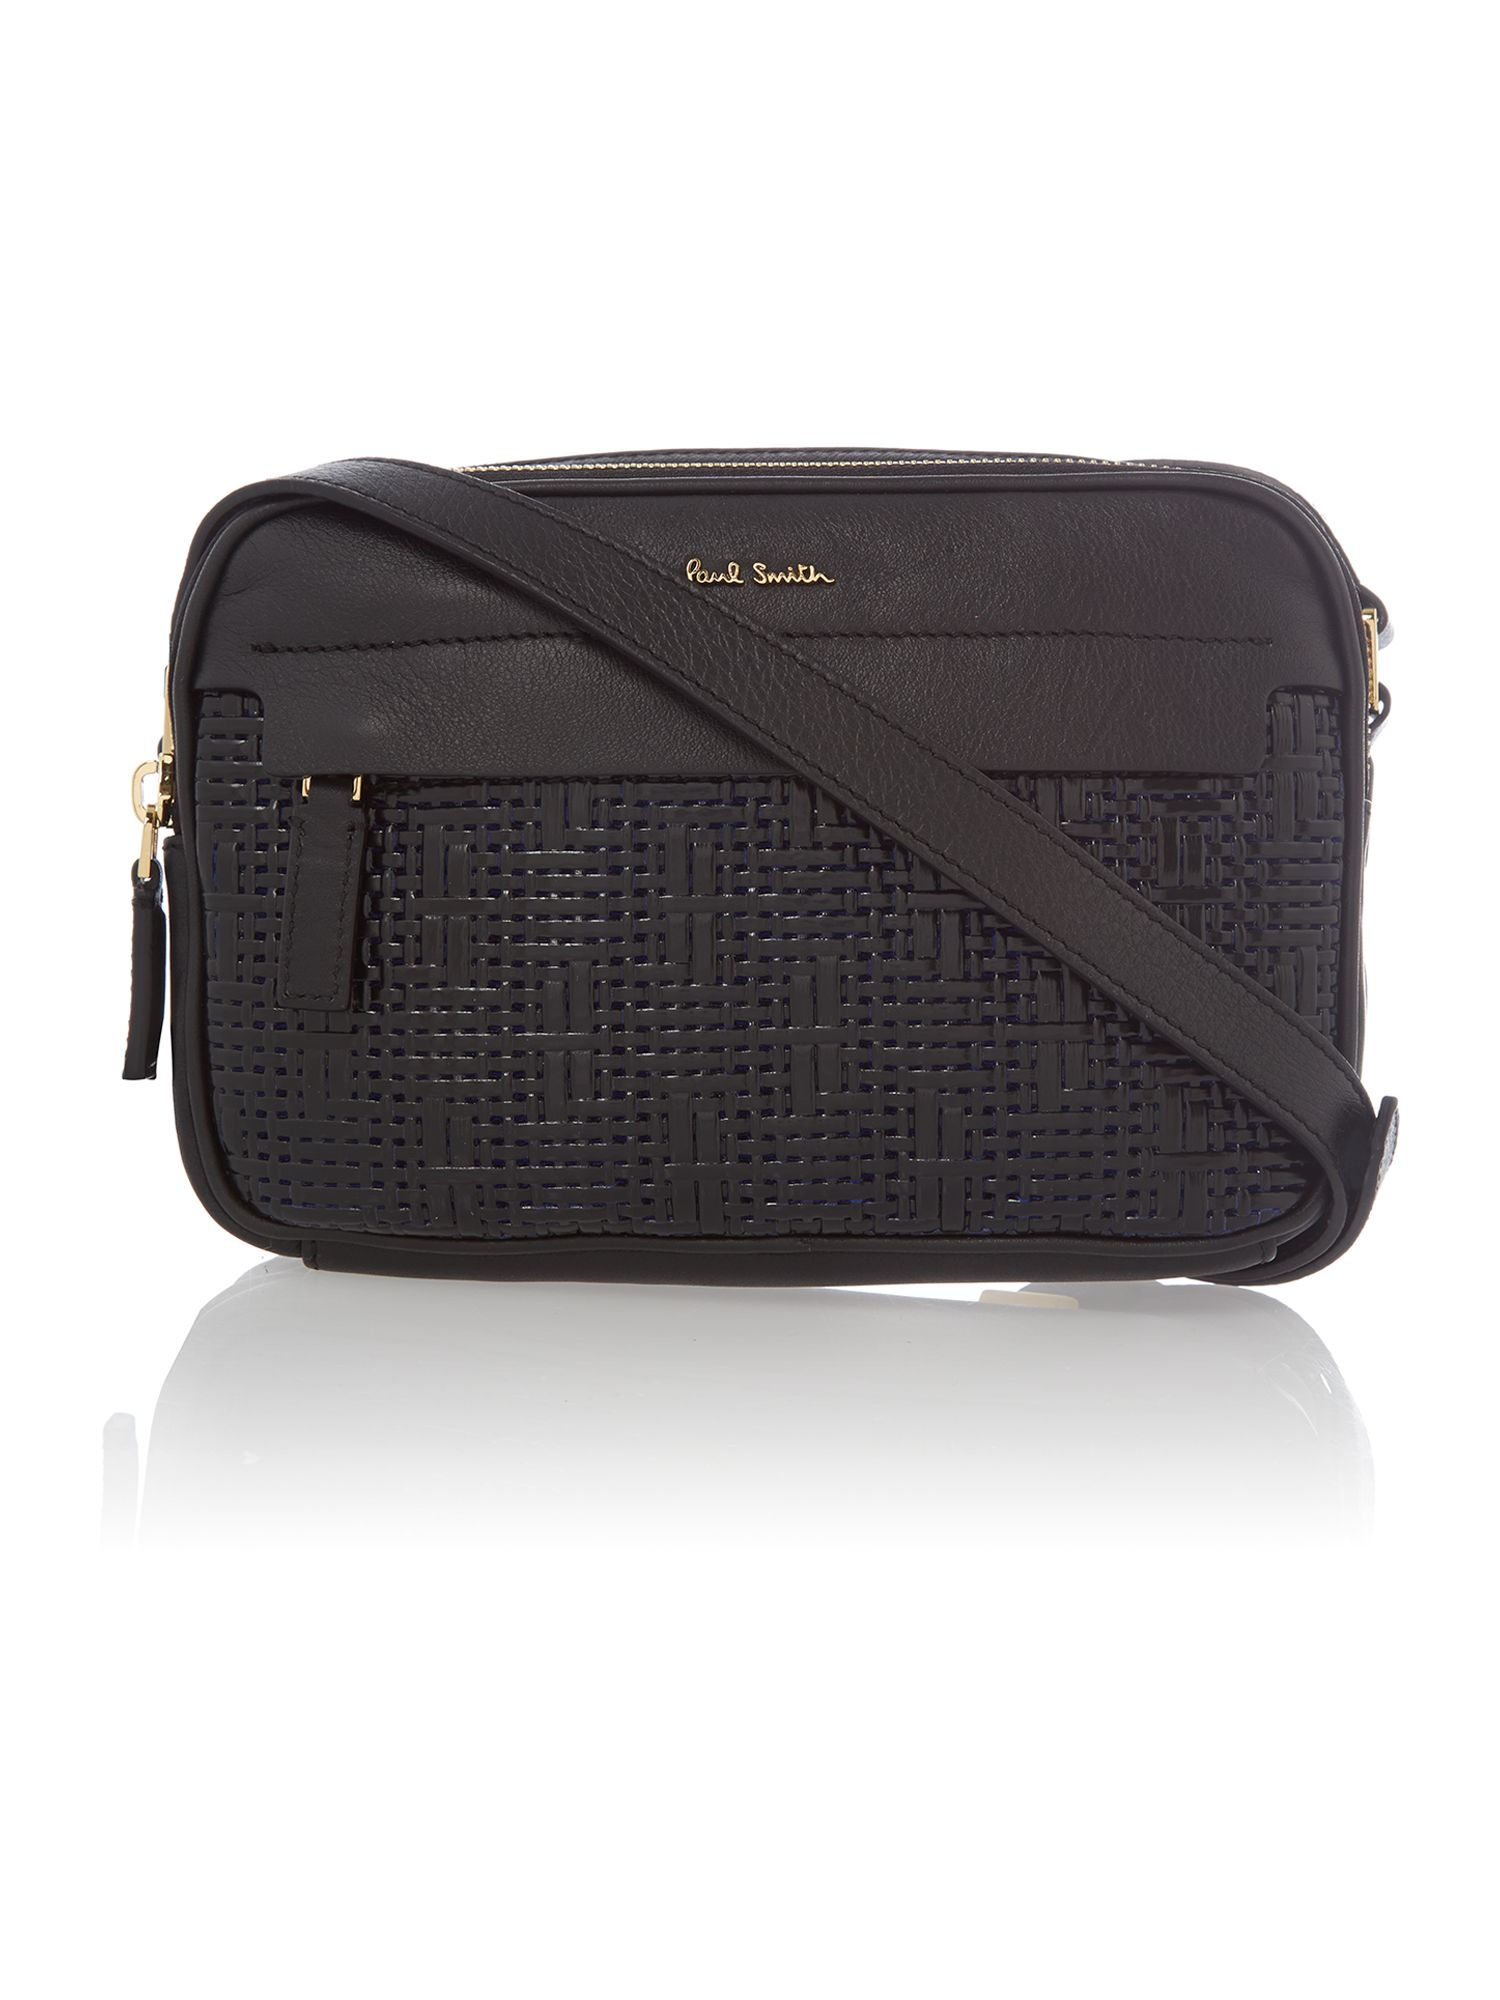 Textured Leather black woven mini cross body bag